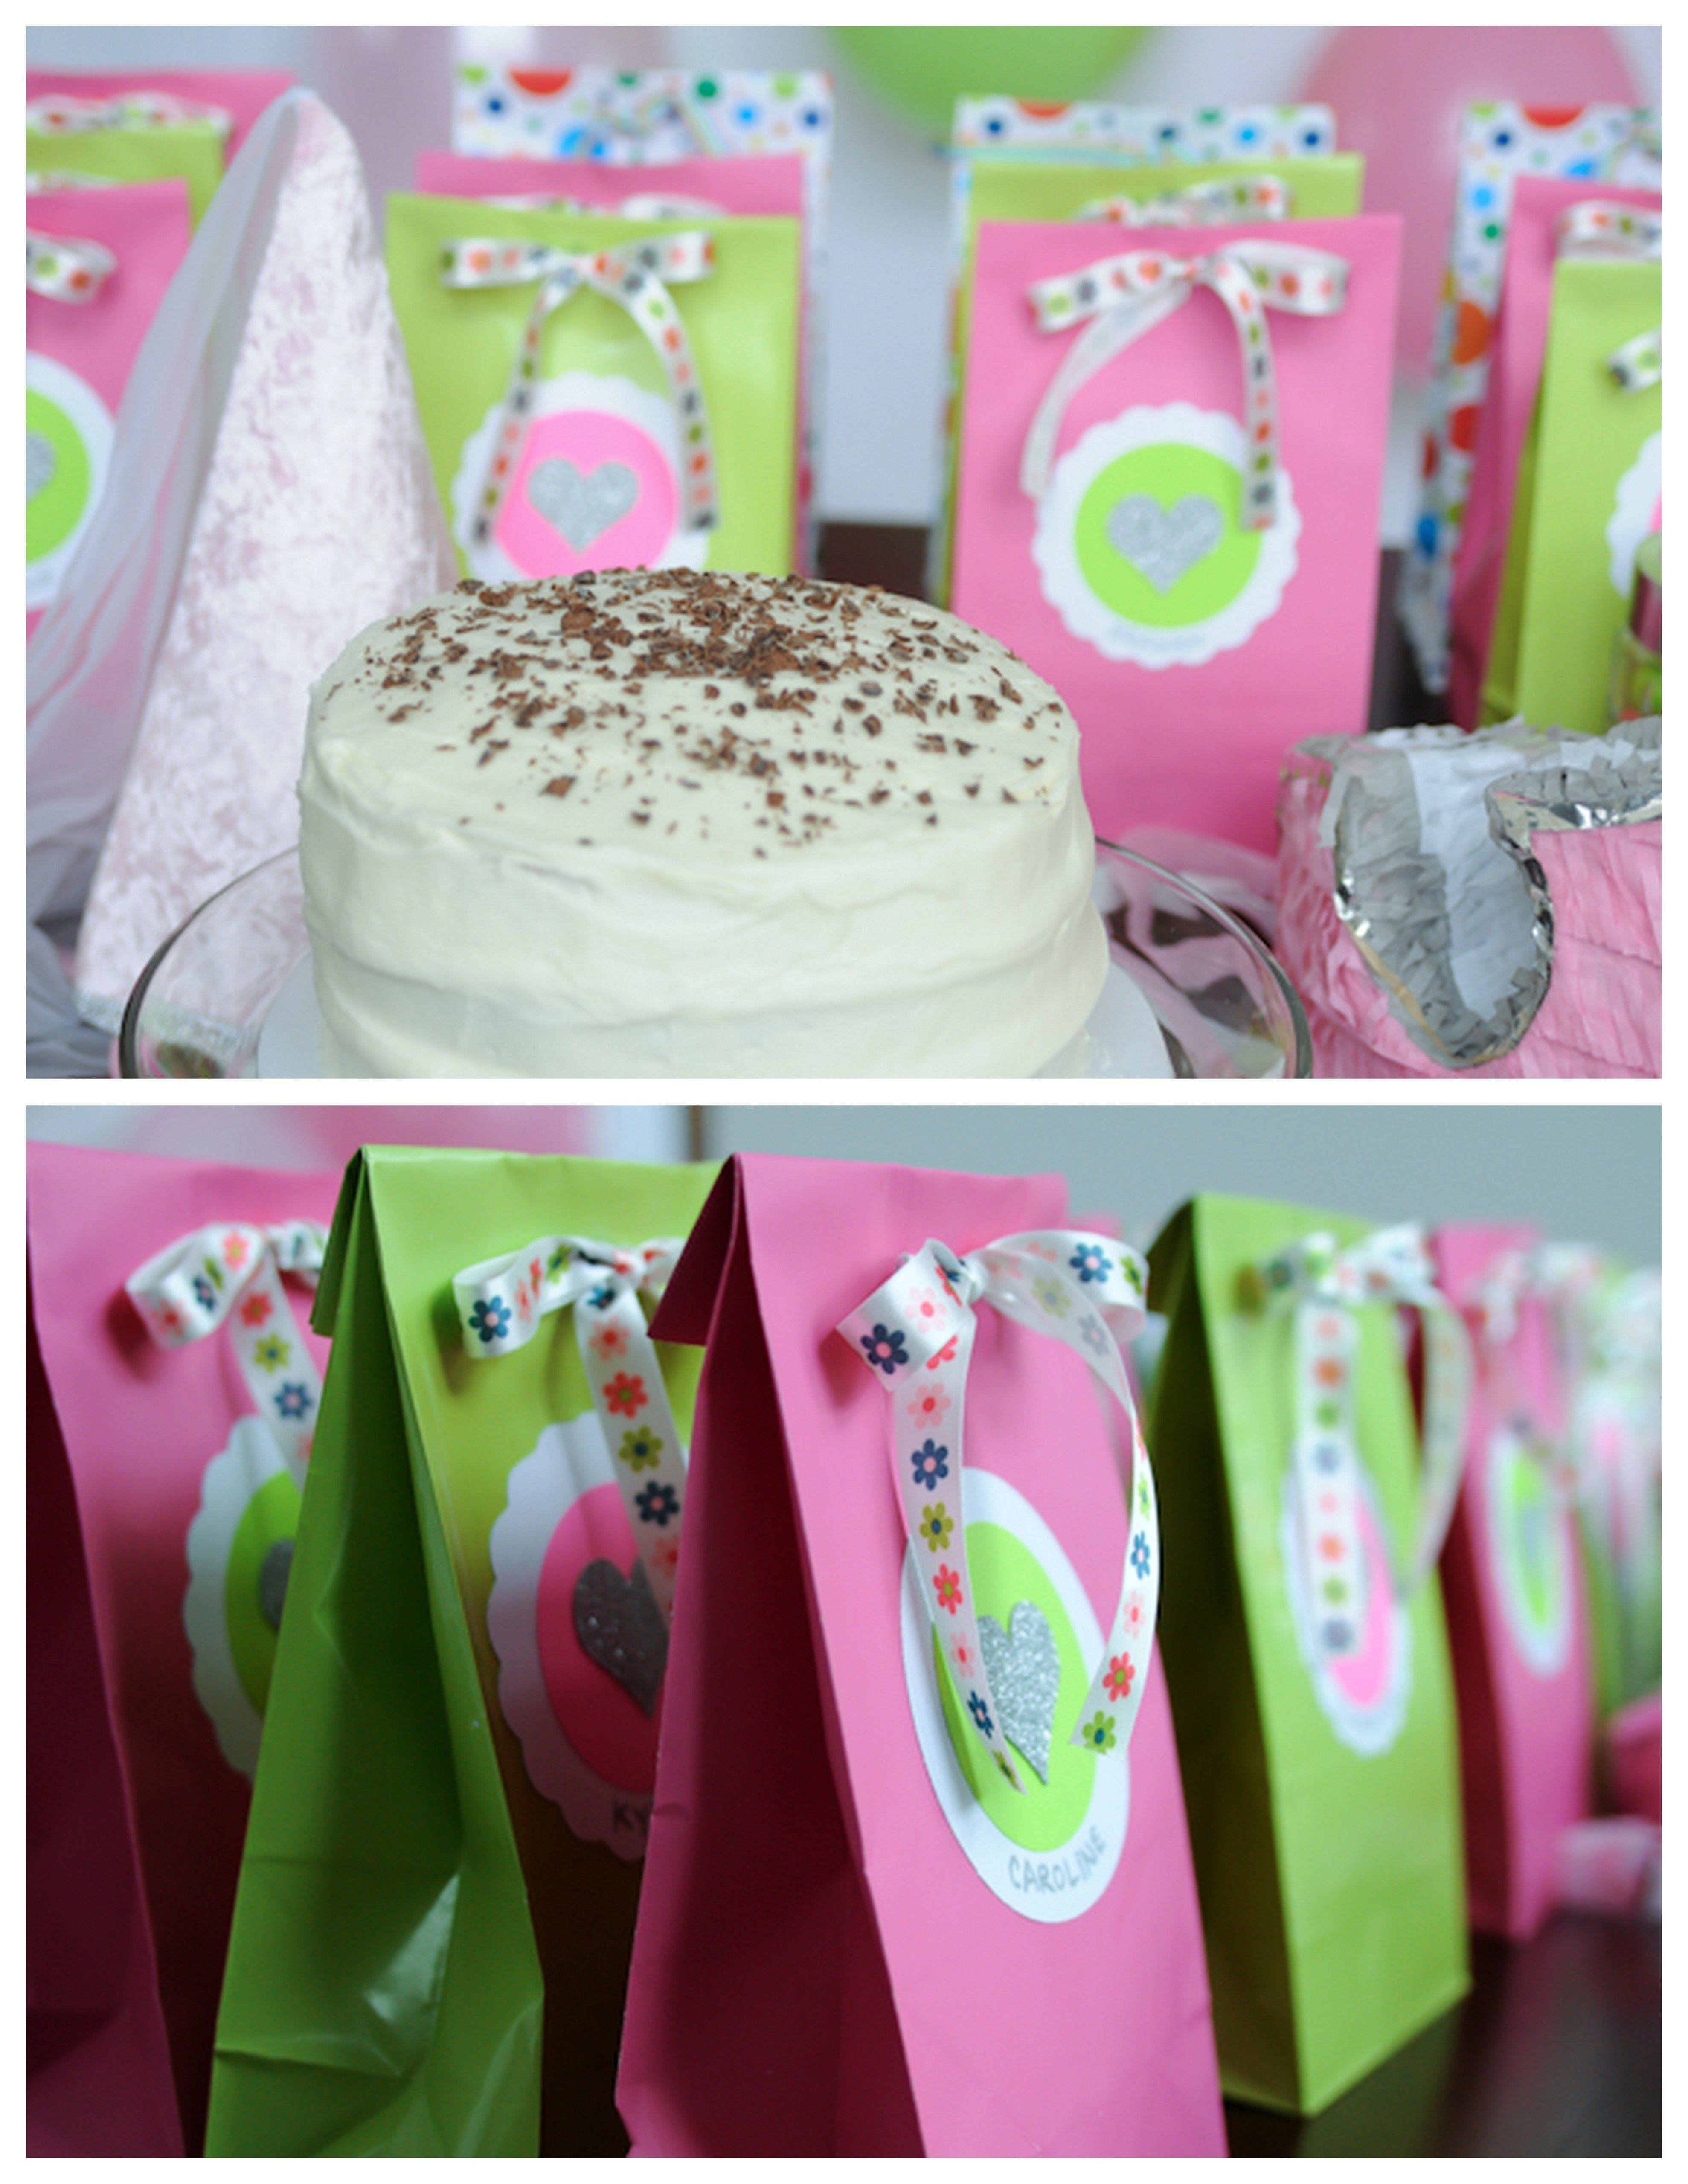 10 Lovable 4 Yr Old Girl Birthday Party Ideas cute year birthday party ideas entertainment ideas for visit 1 2020